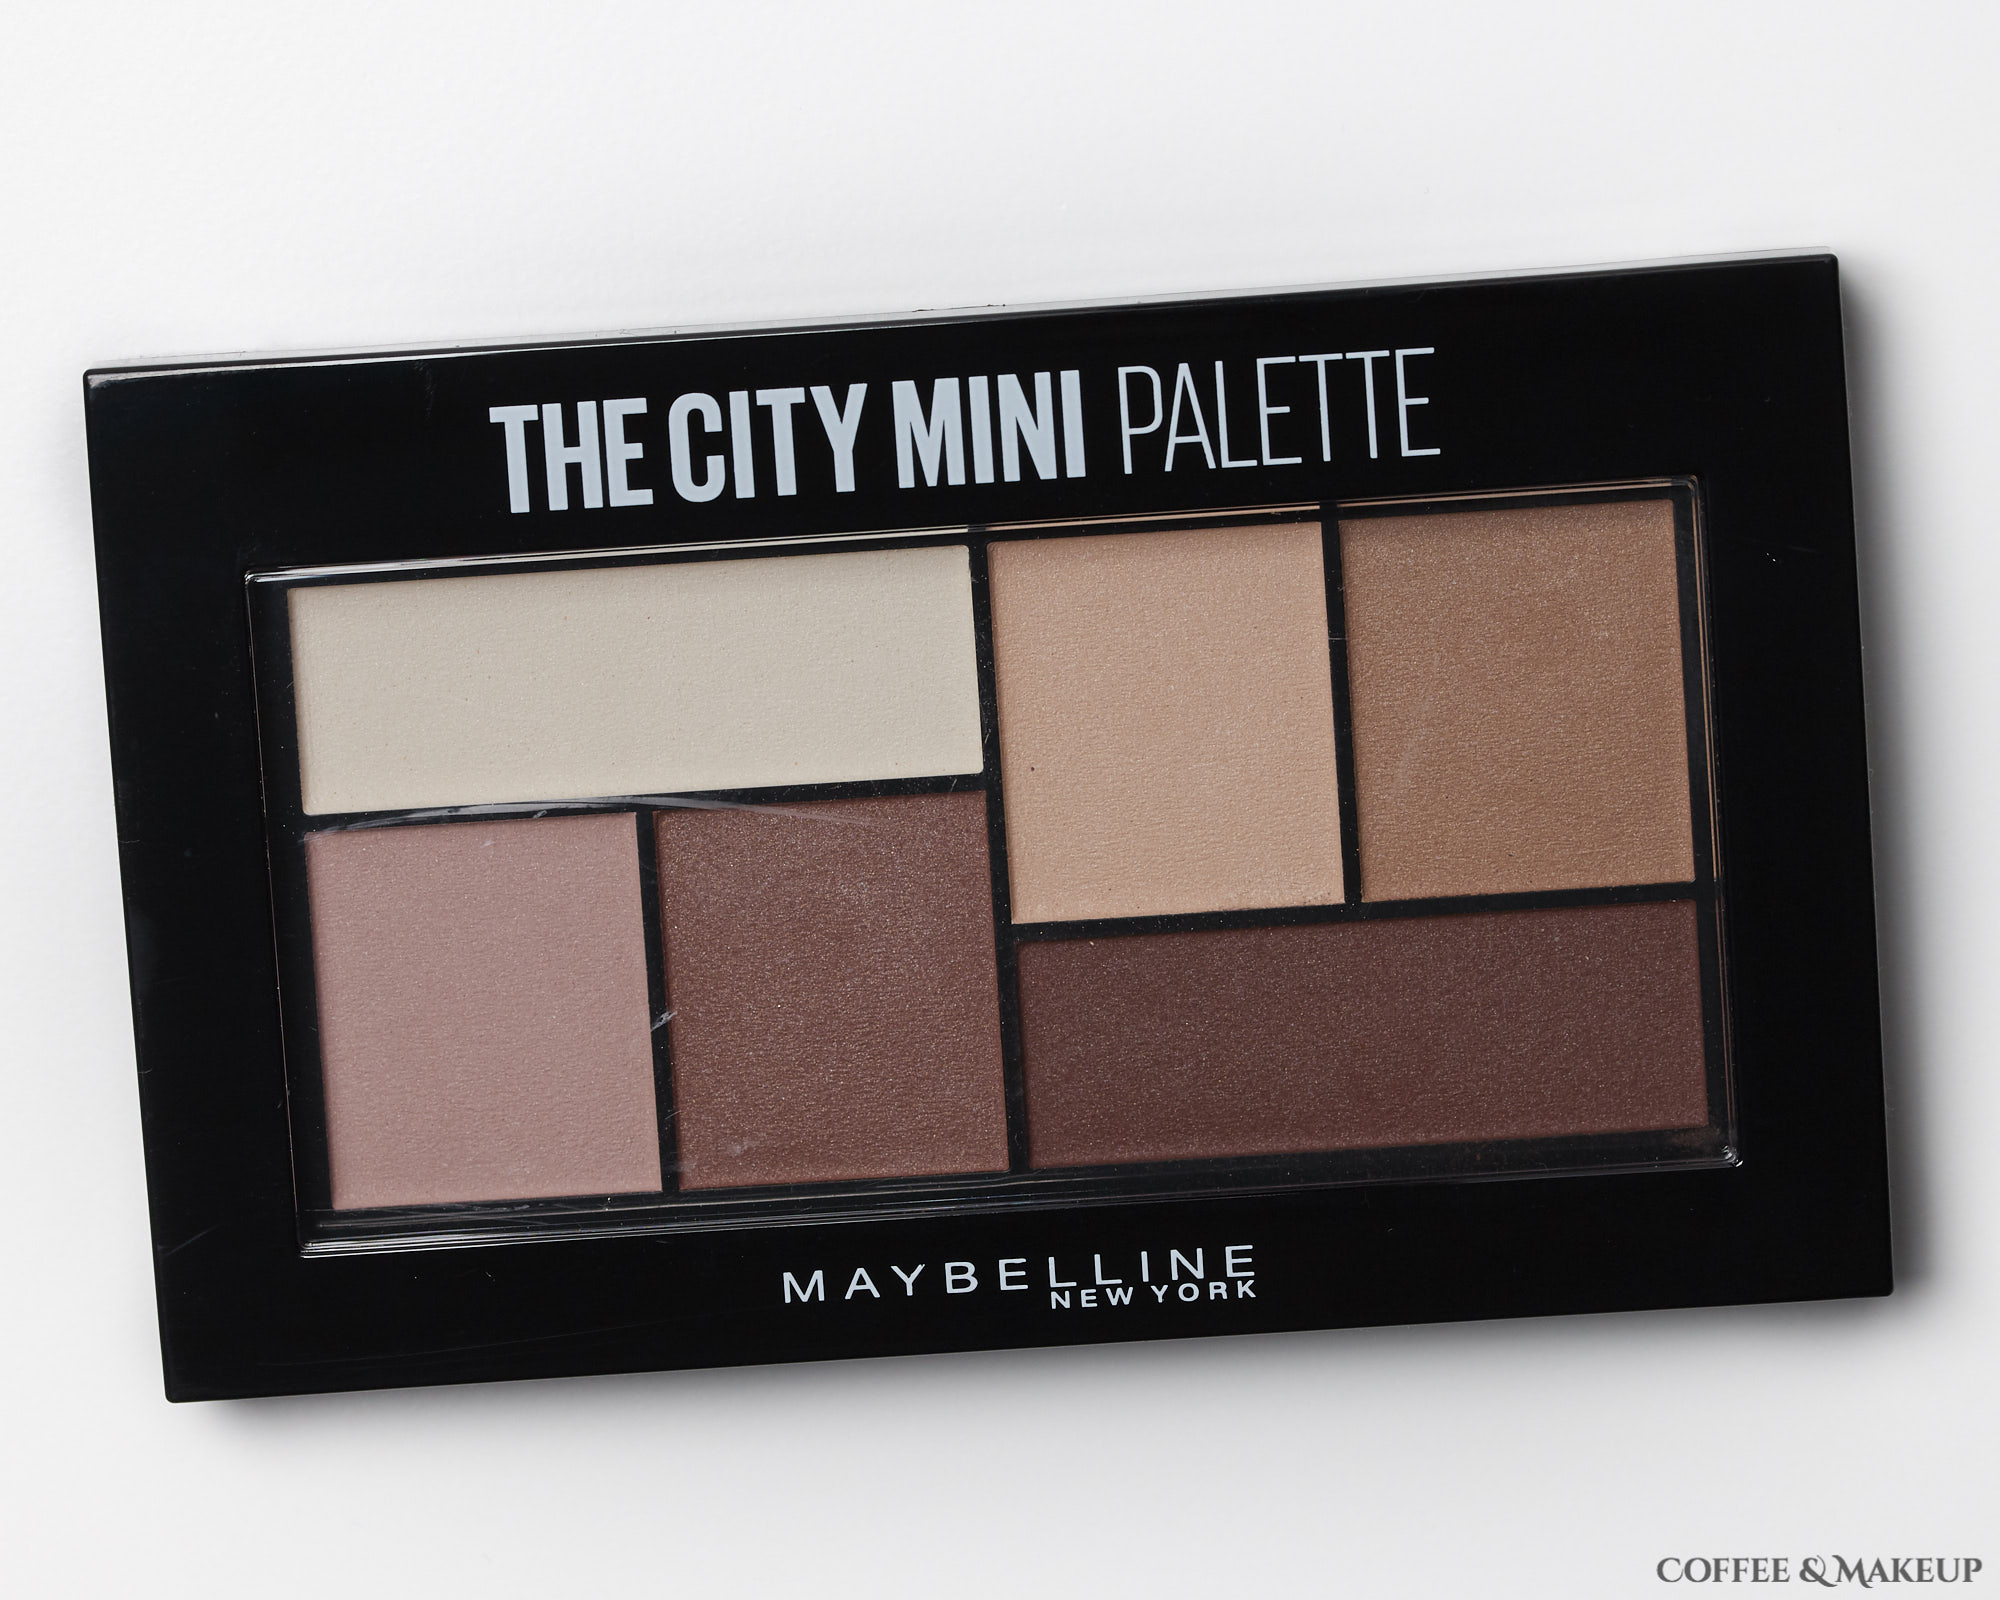 Maybelline Matte About Town City Mini Palette